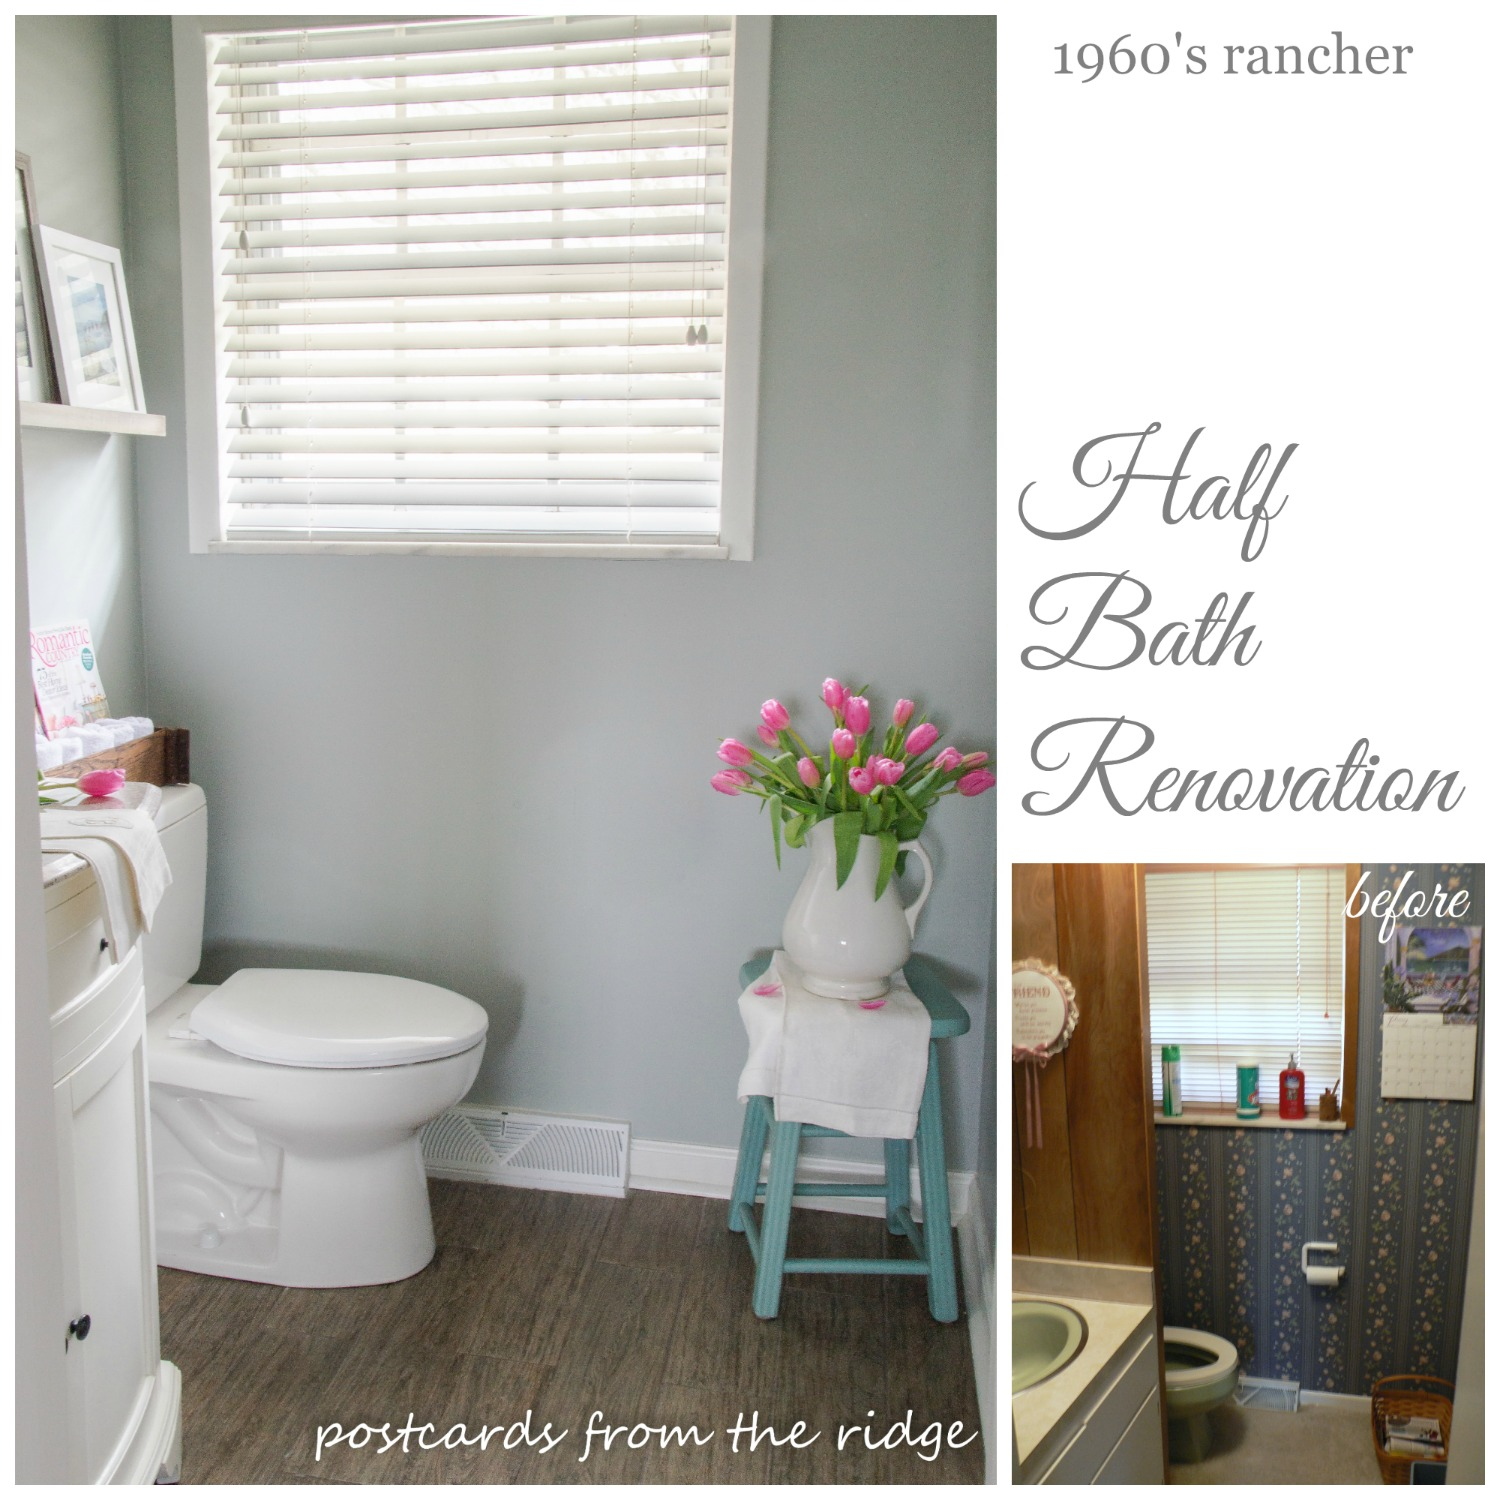 Our Half Bathroom Renovation Details | Postcards from the Ridge